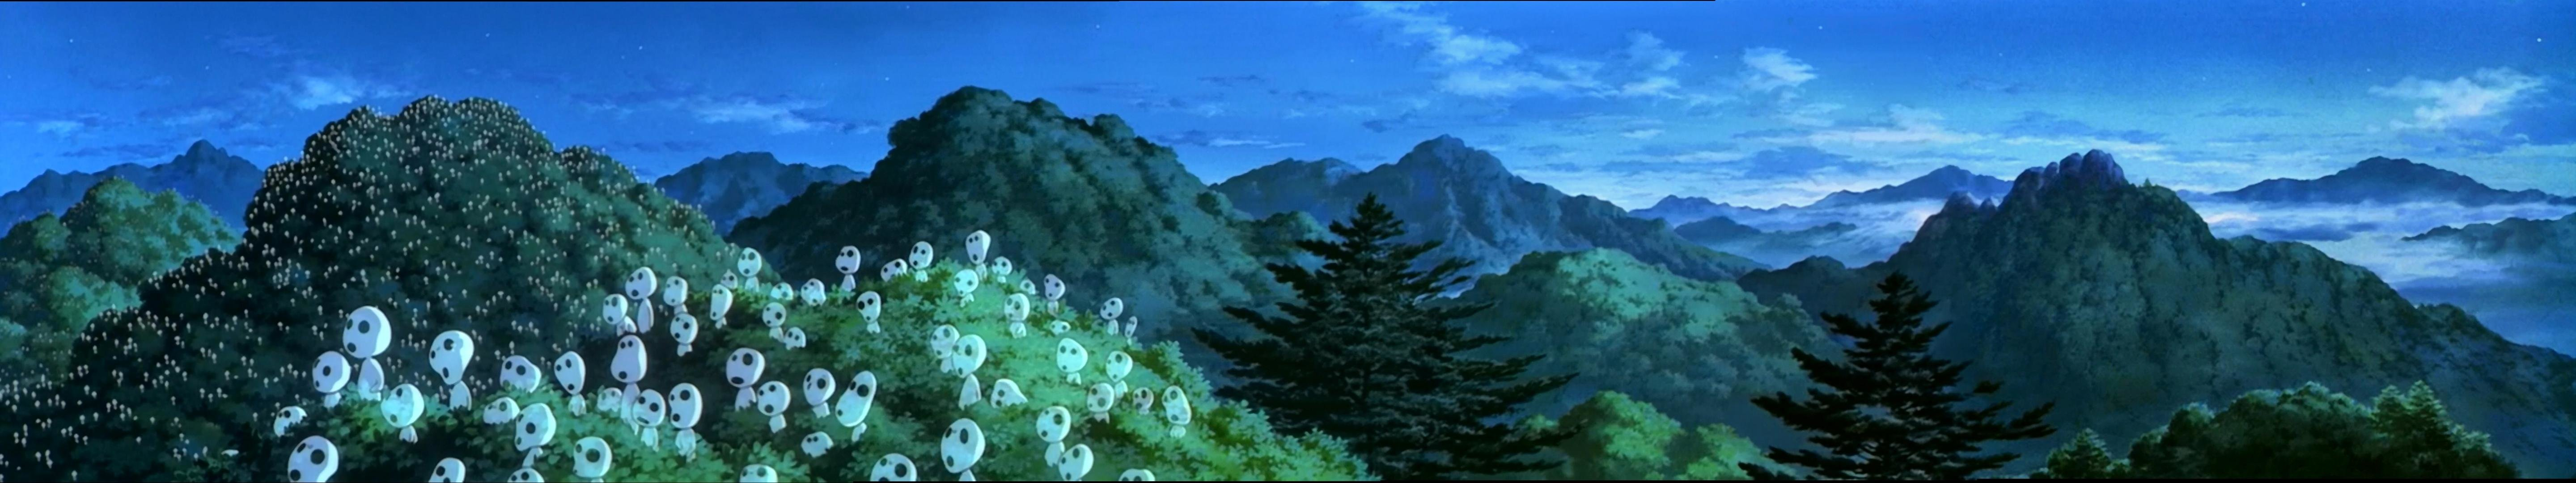 Download triple screen 5760x1080 Princess Mononoke desktop background ID:383782 for free